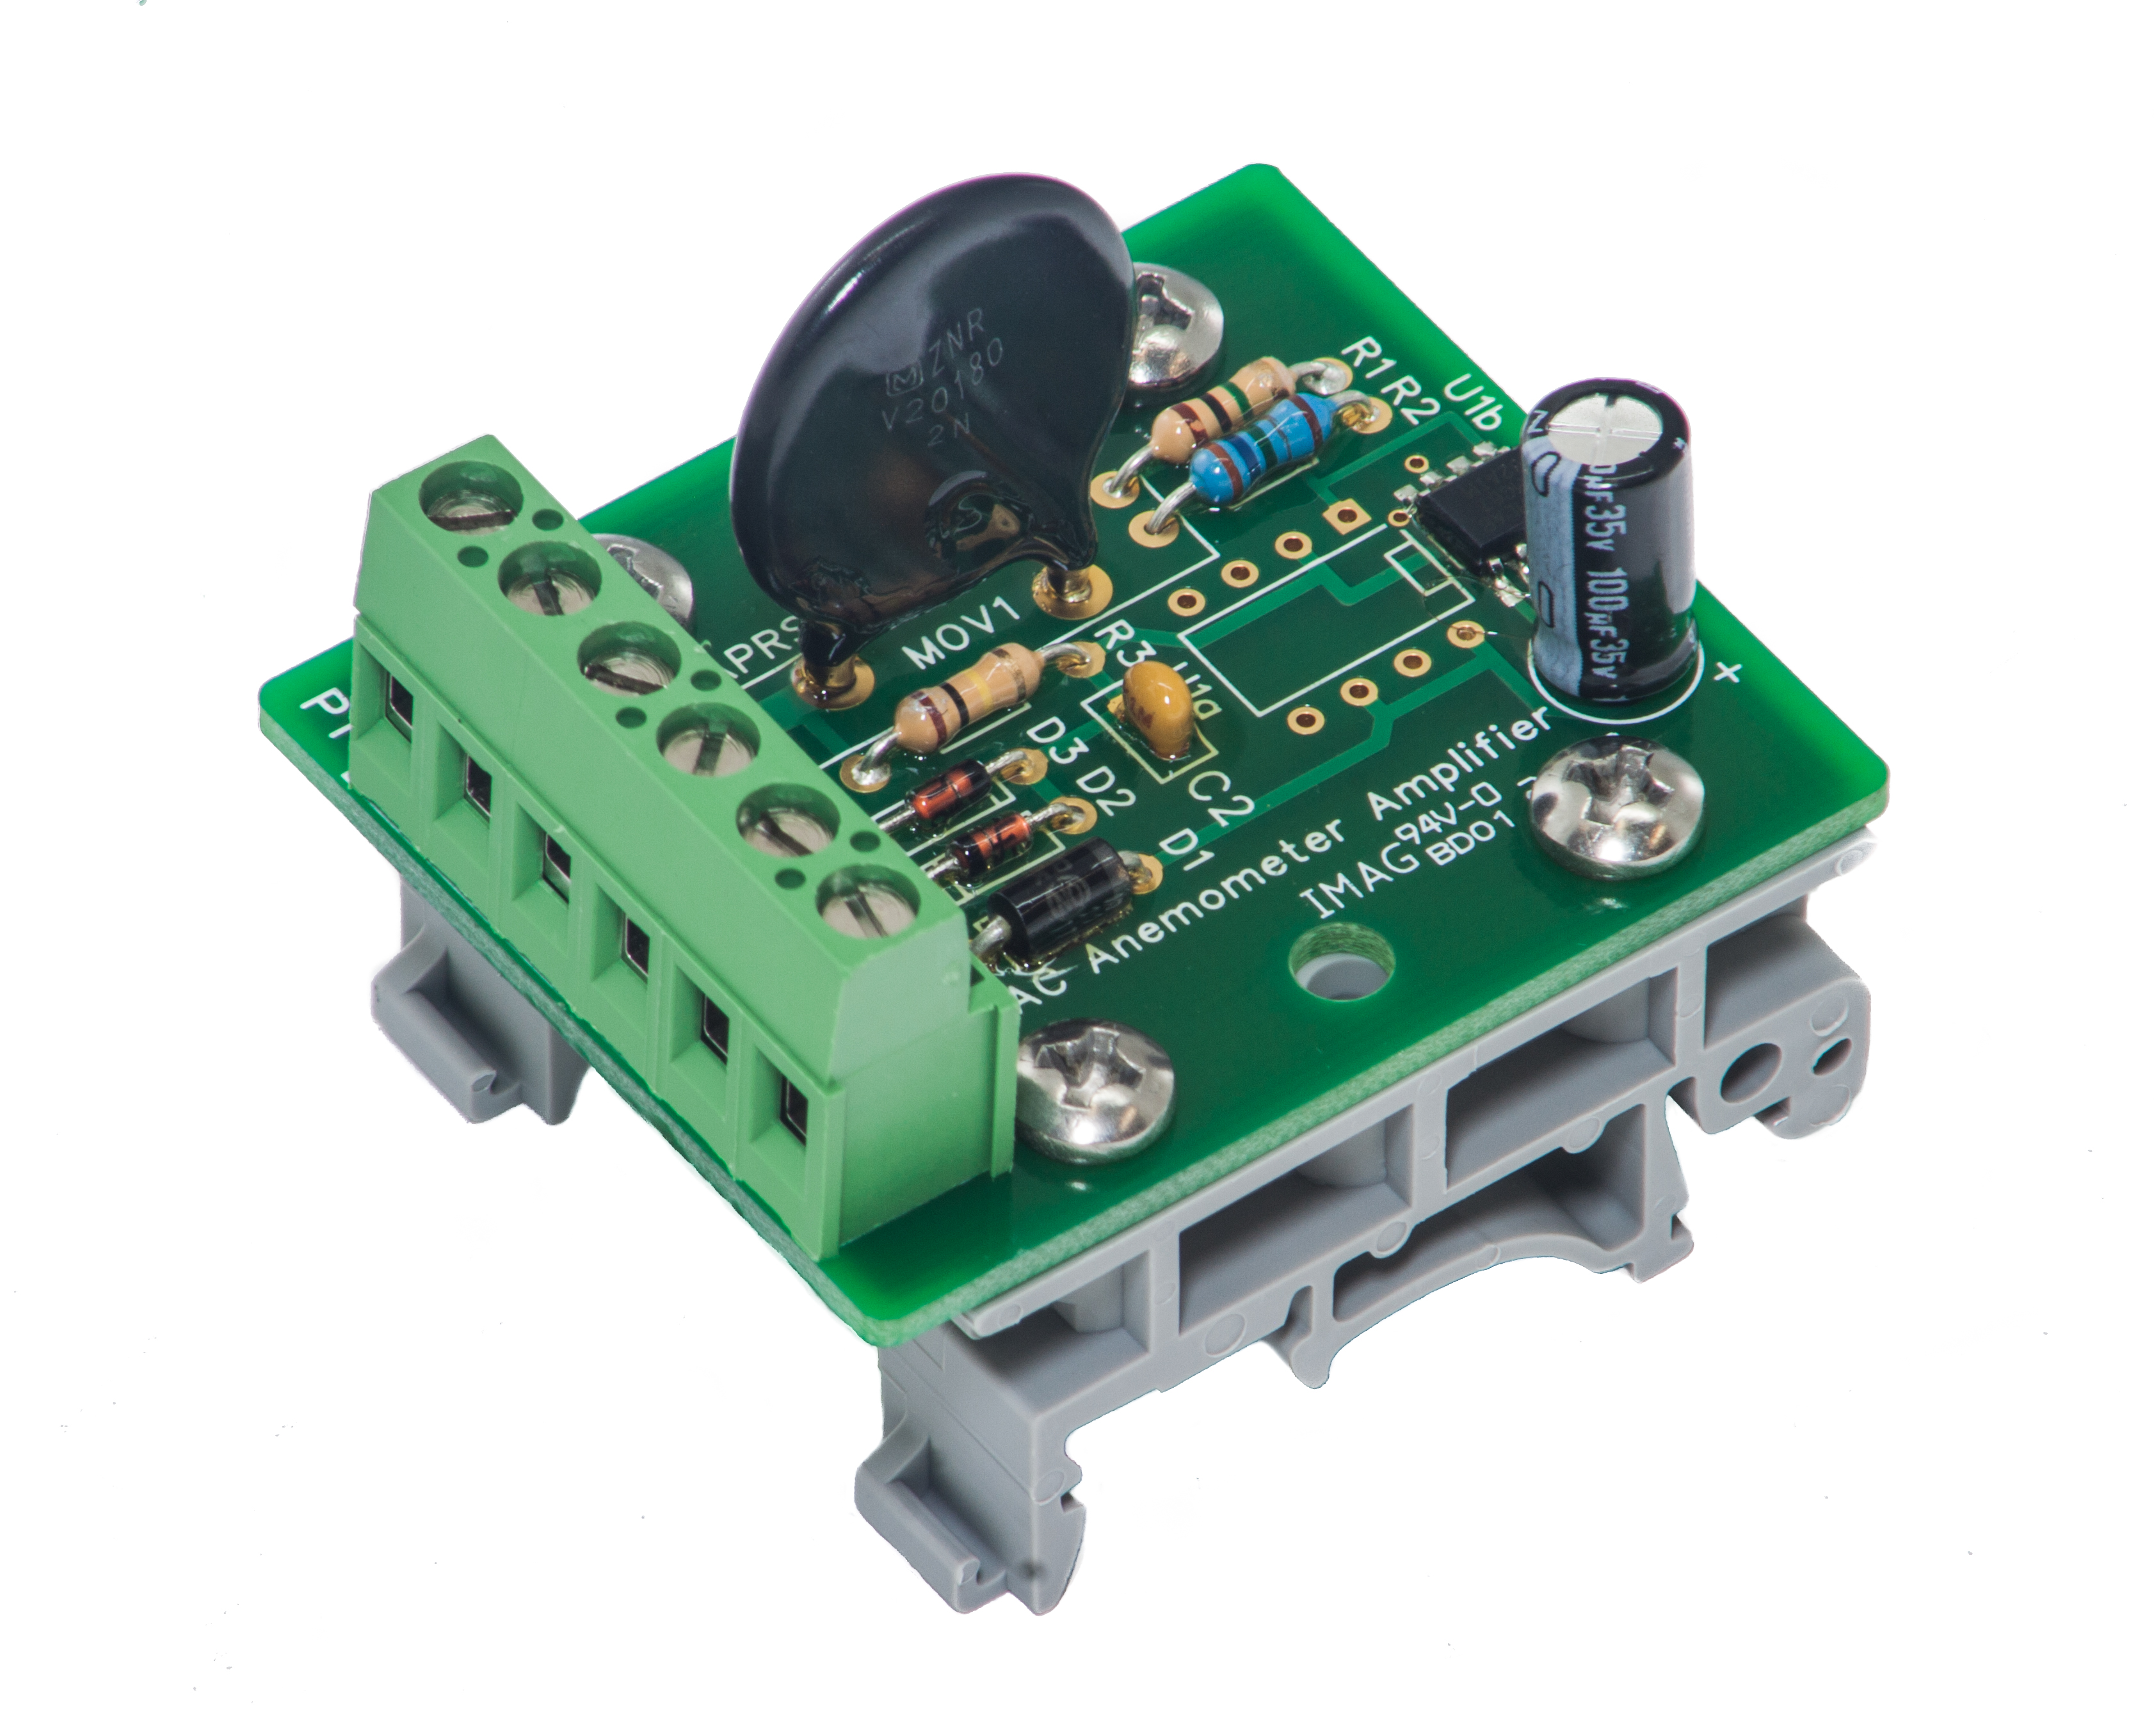 small resolution of aprs6511 ac anemometer amplifier board view full size view slideshow